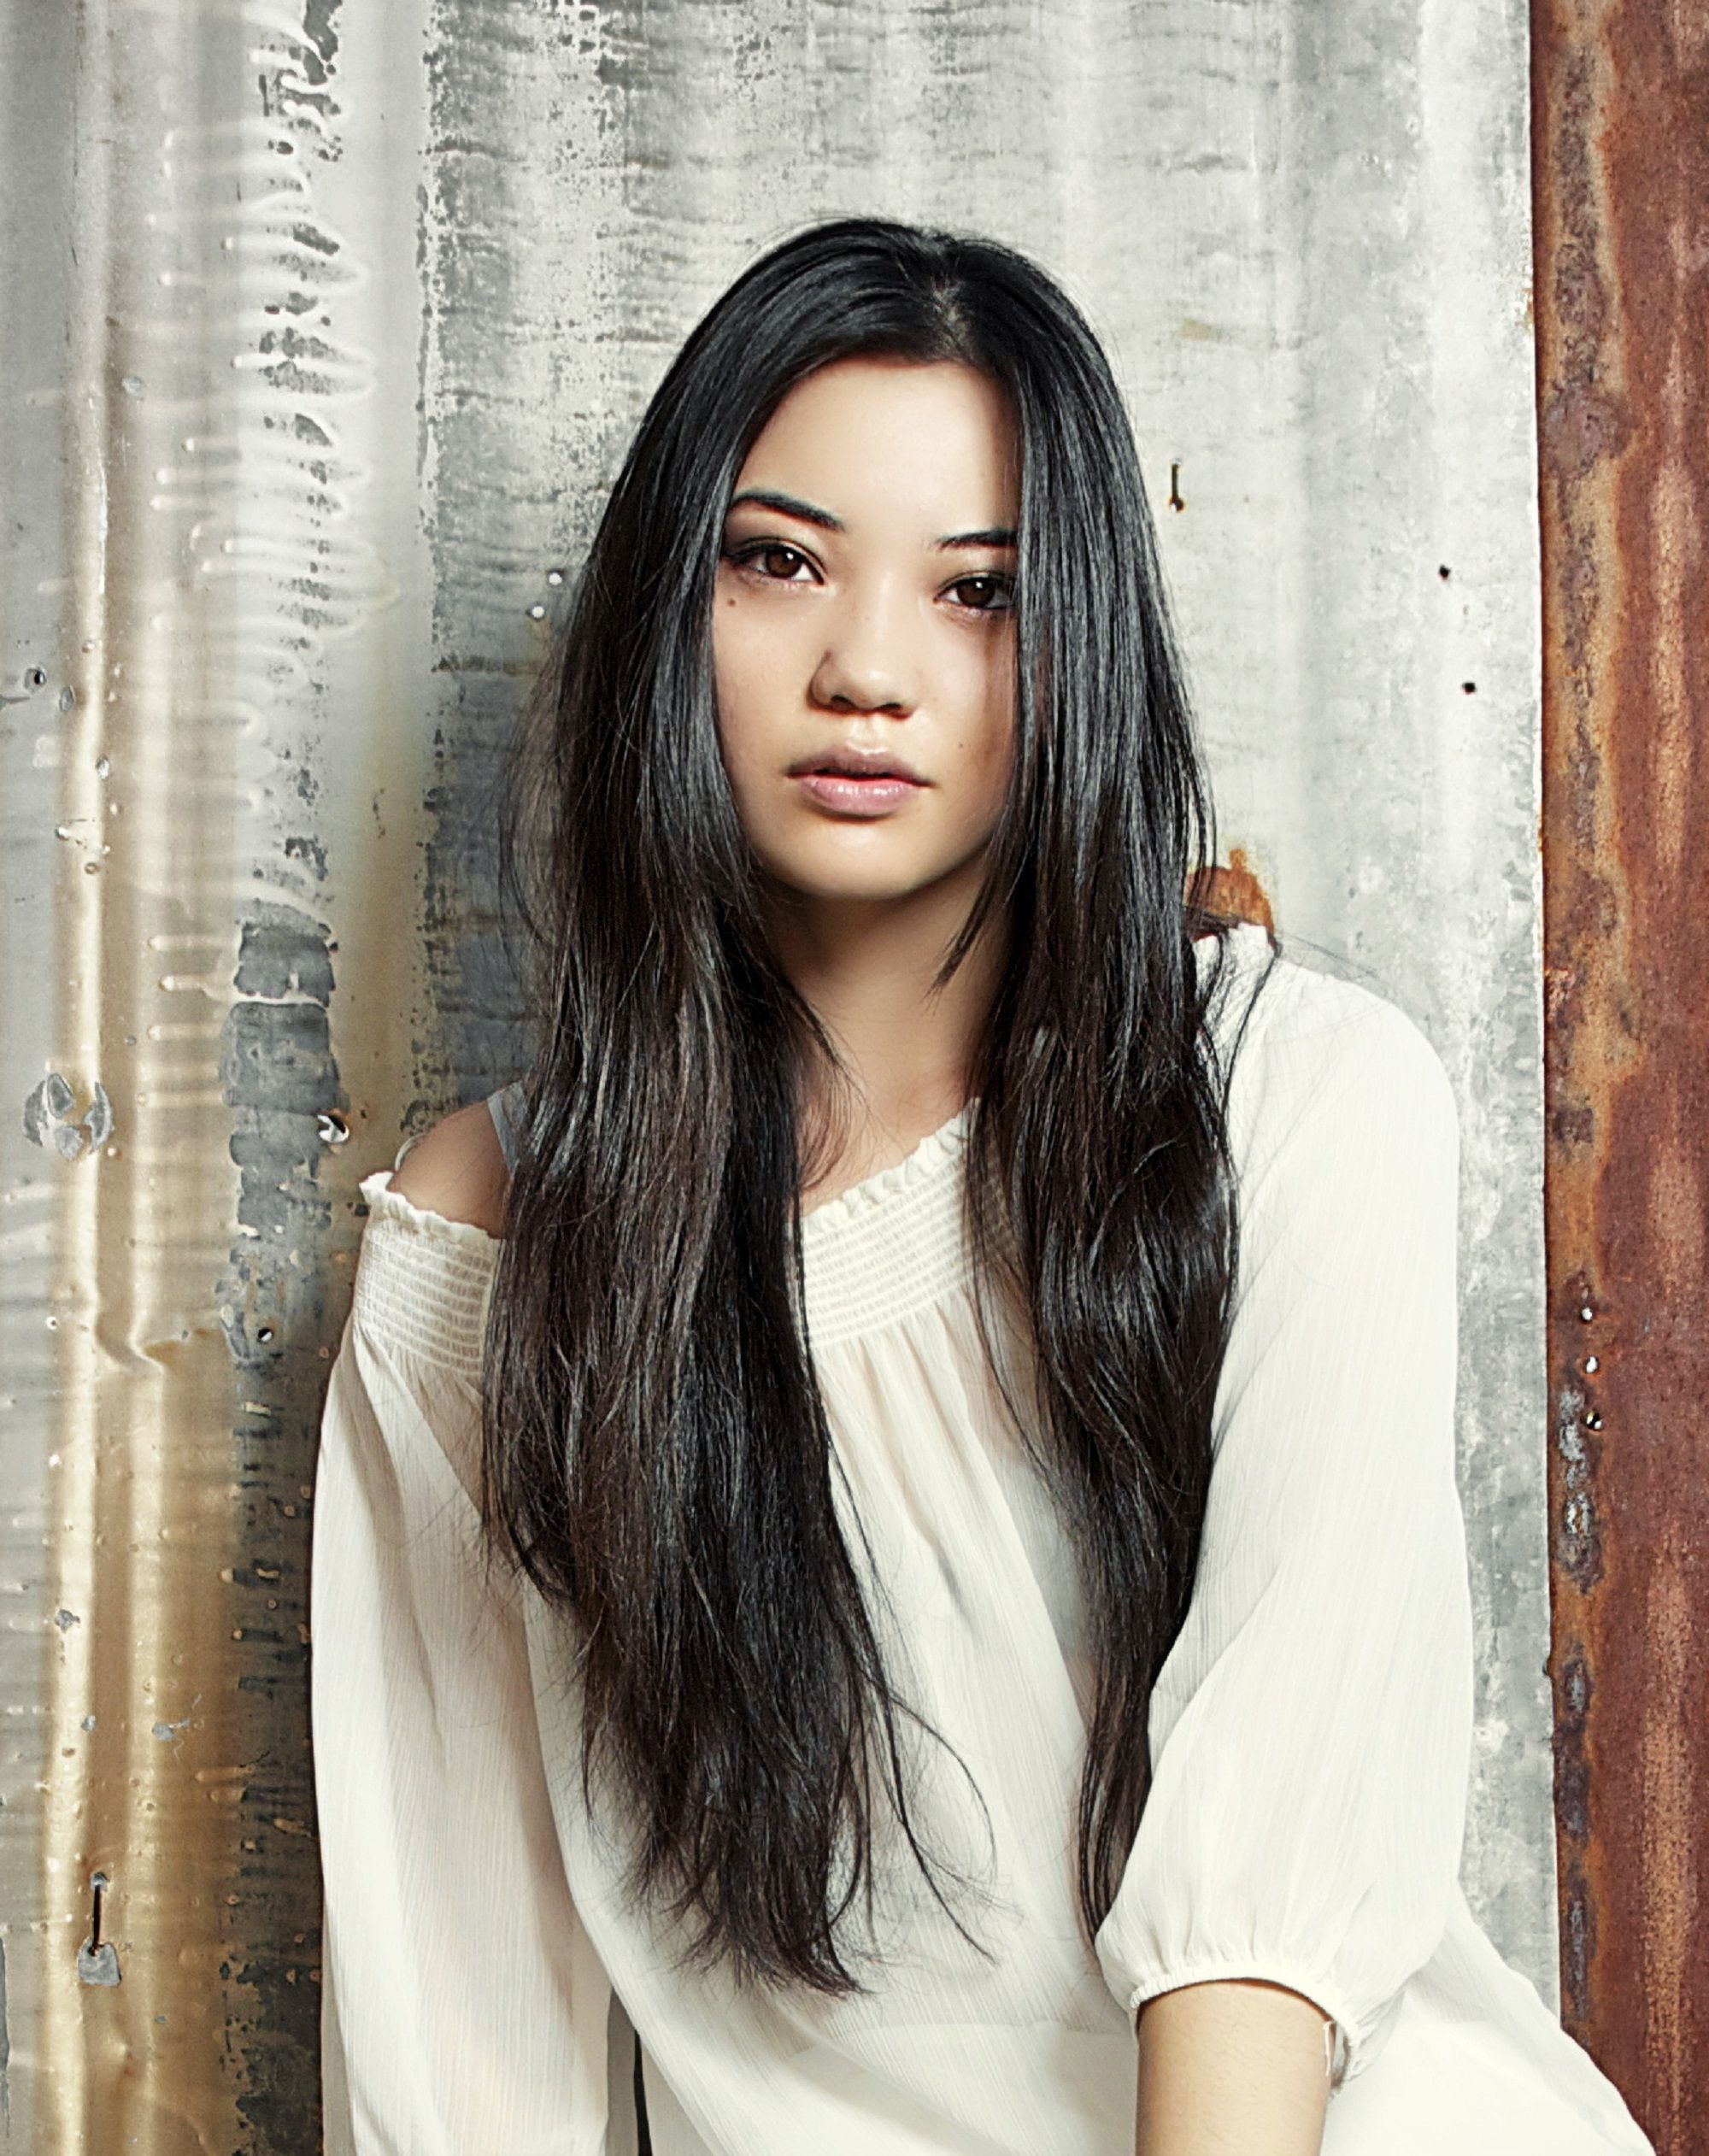 Long black hair: Woman wearing a white blouse with long black hair standing against an iron roof background